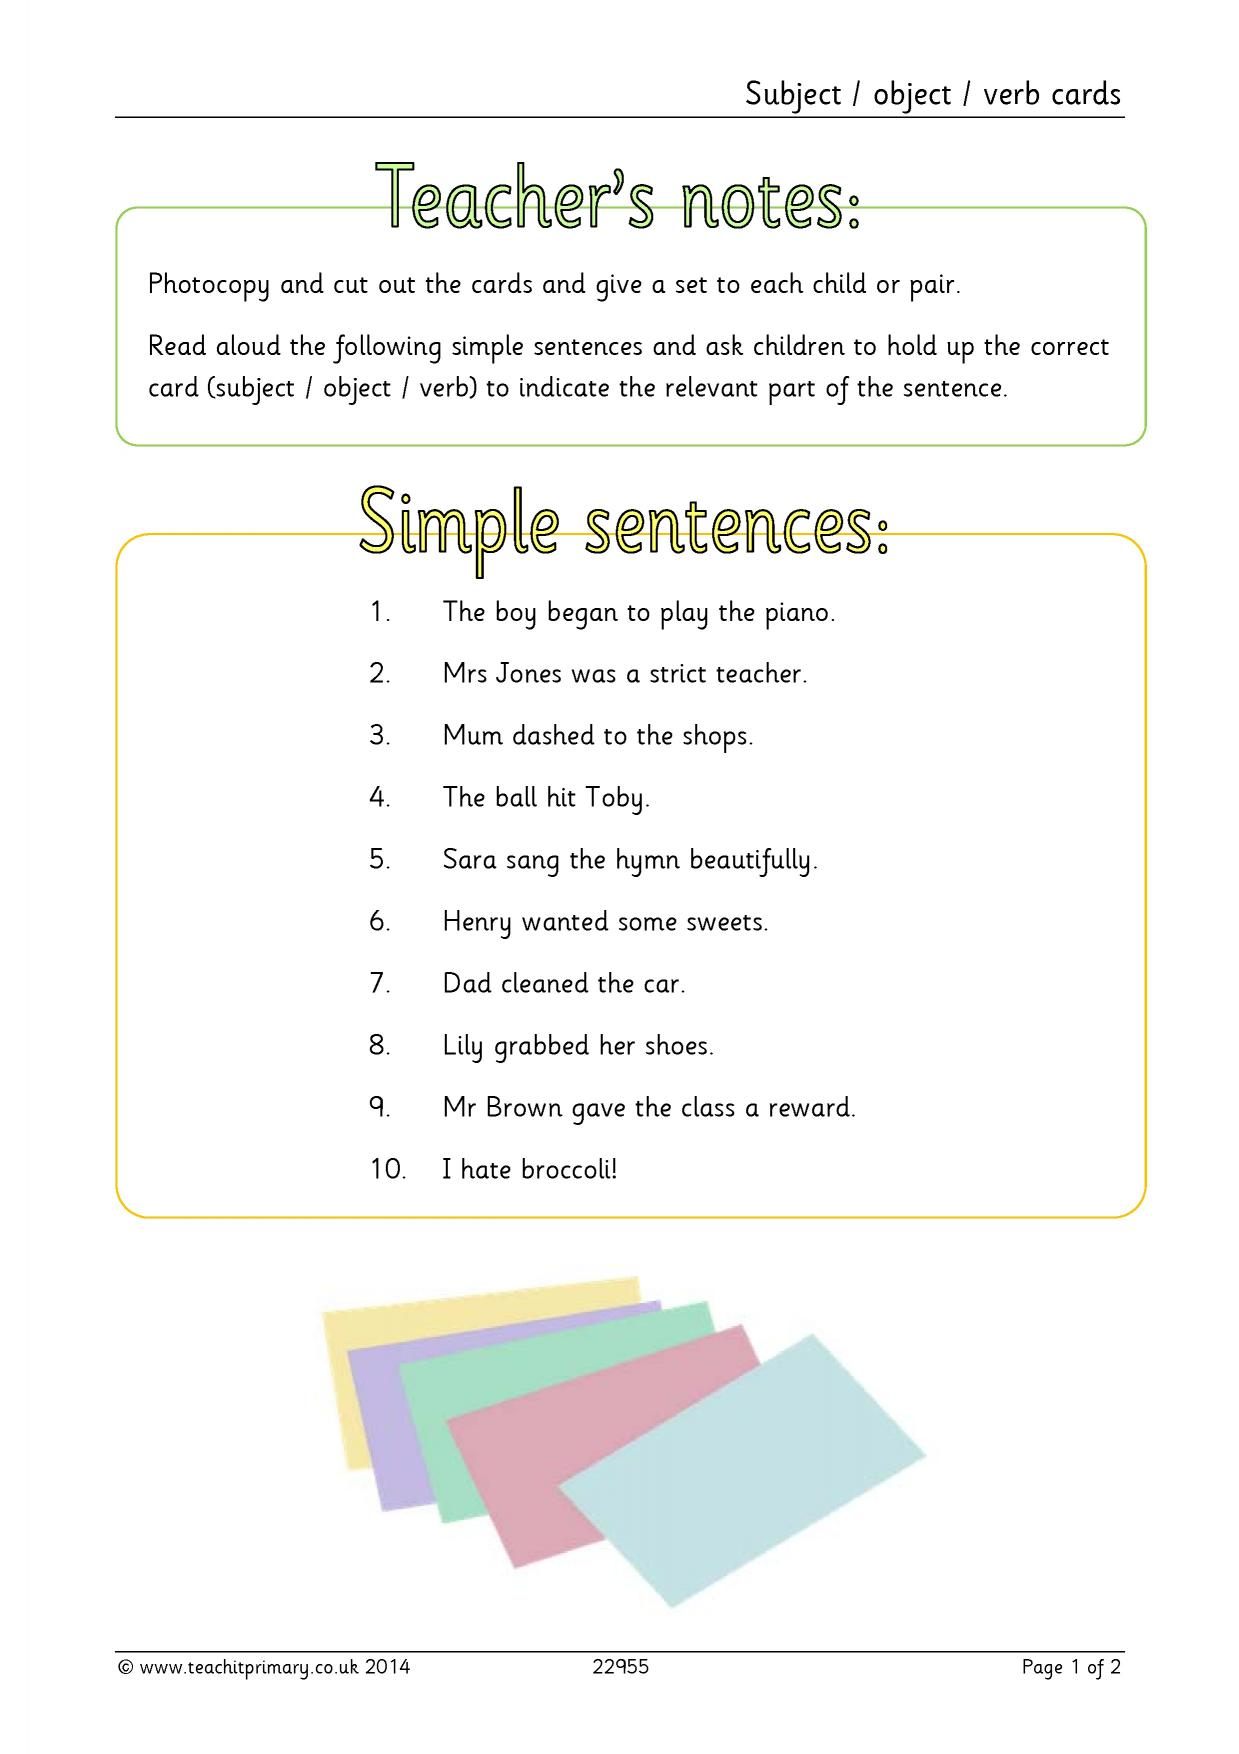 Printables Construction Math Worksheets building construction math worksheets goodnight worksheet sentence ks1 unscramble the sentences worksheets